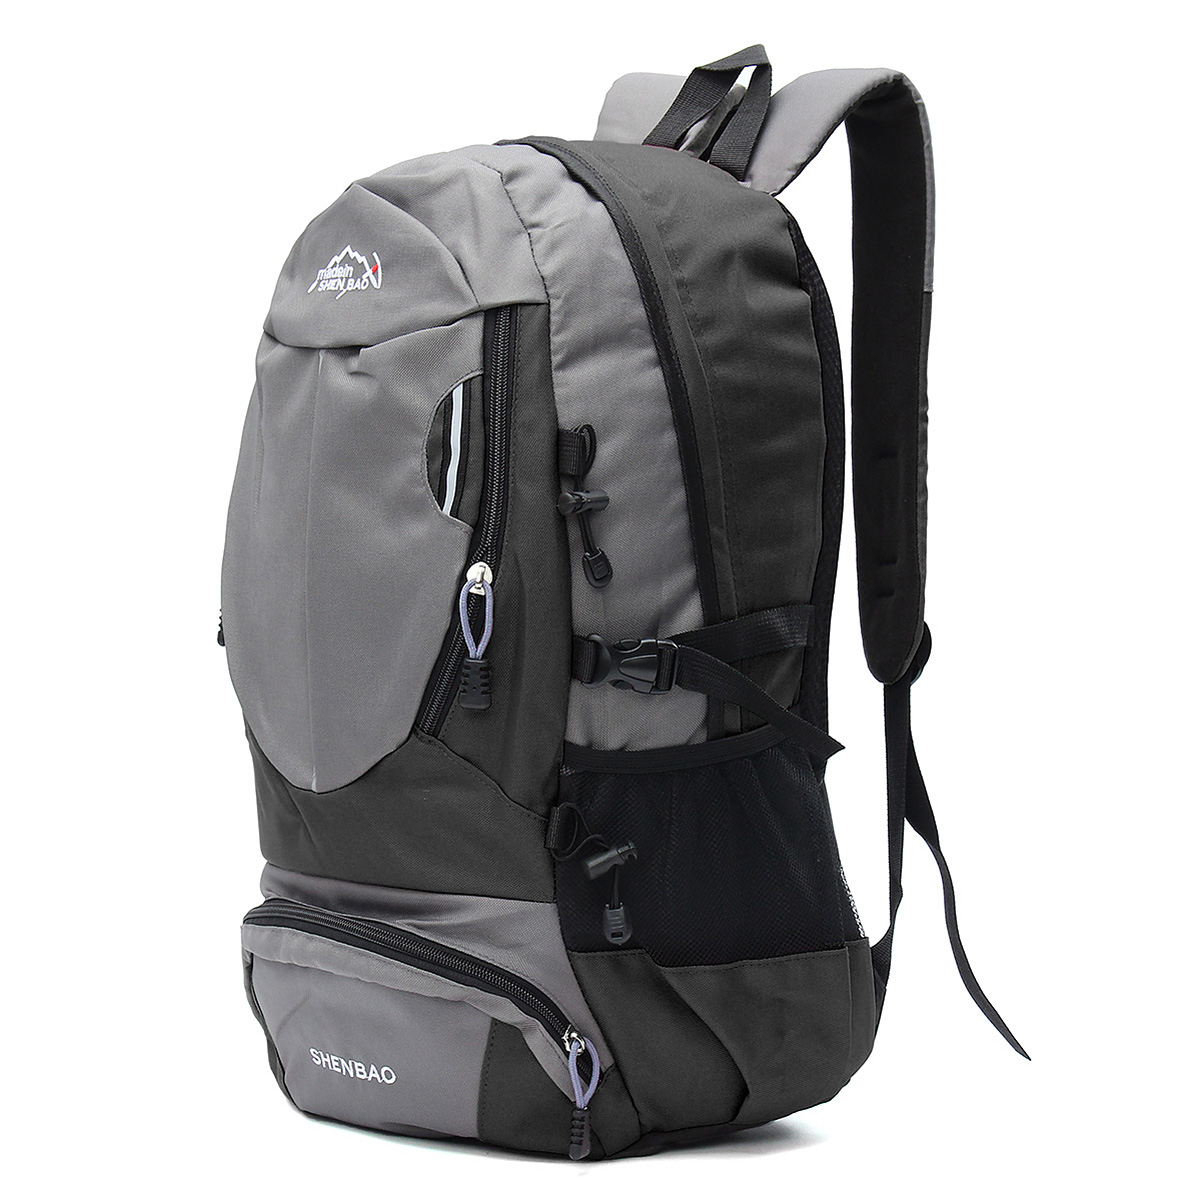 35l Rucksack 35l Sports Travel Backpack Camping Hiking Unisex Rucksack